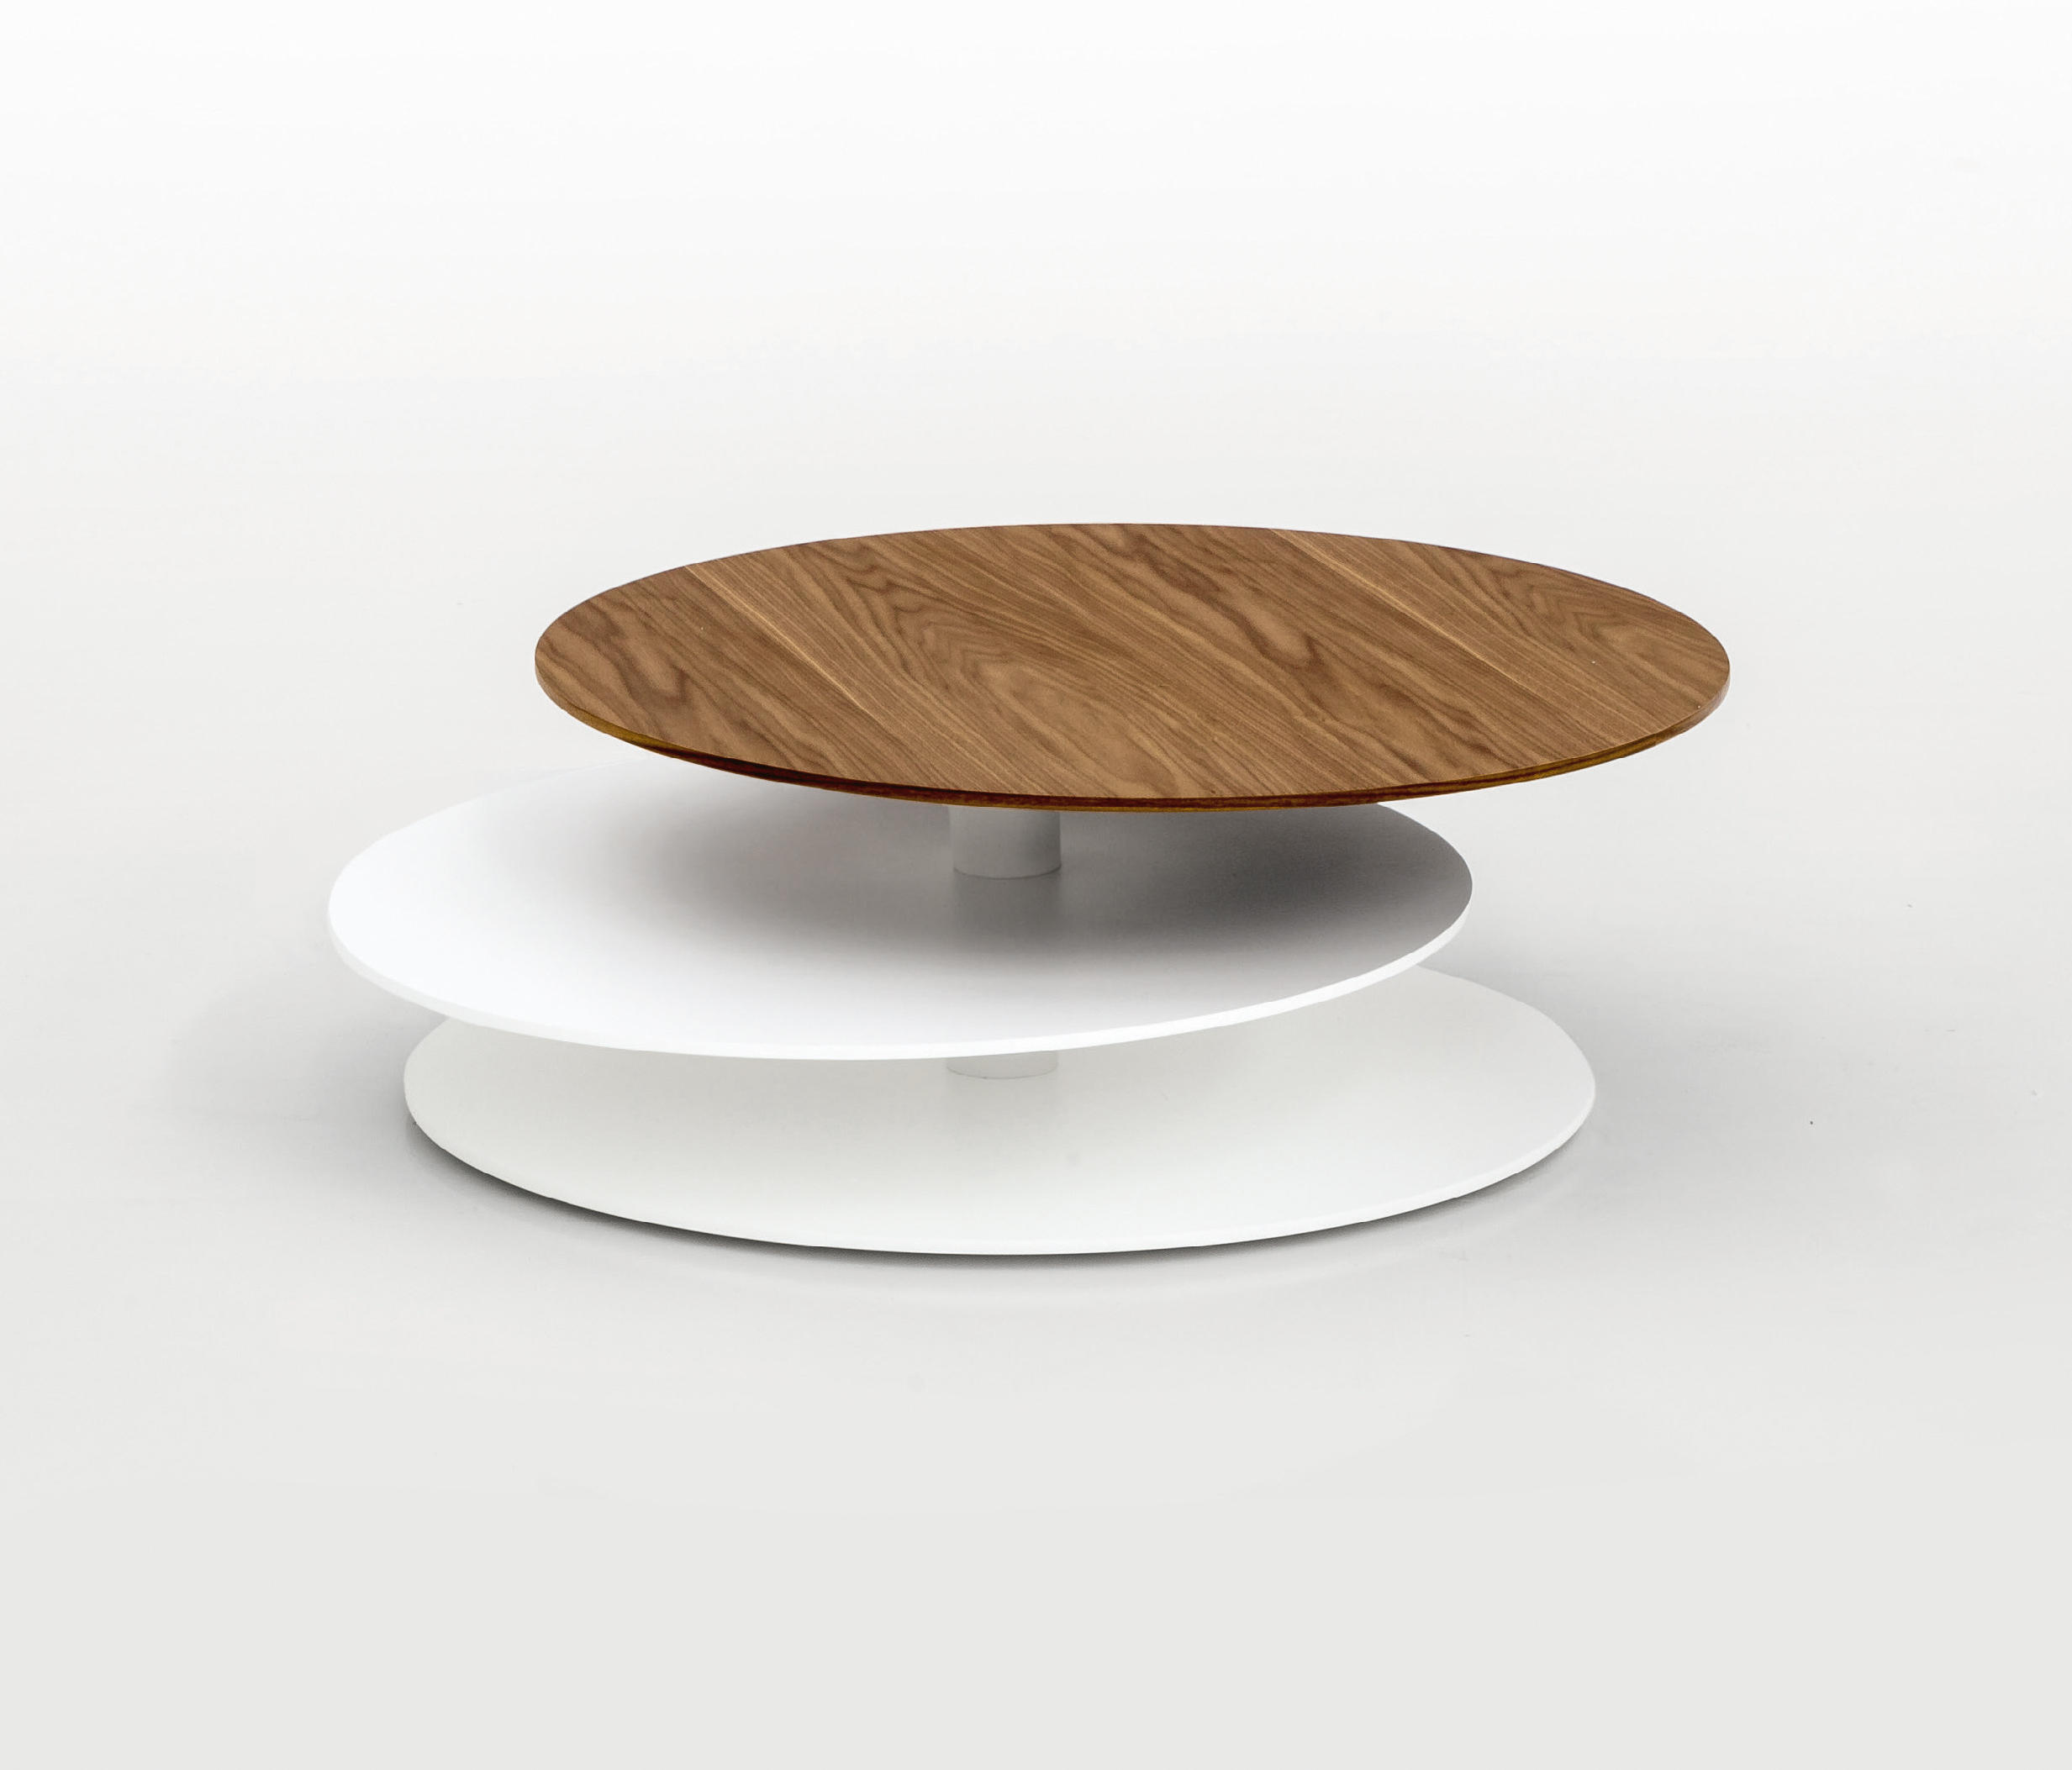 Round Coffee Table Jove Collection By Baxter Design: SPACE - Coffee Tables From Tonin Casa